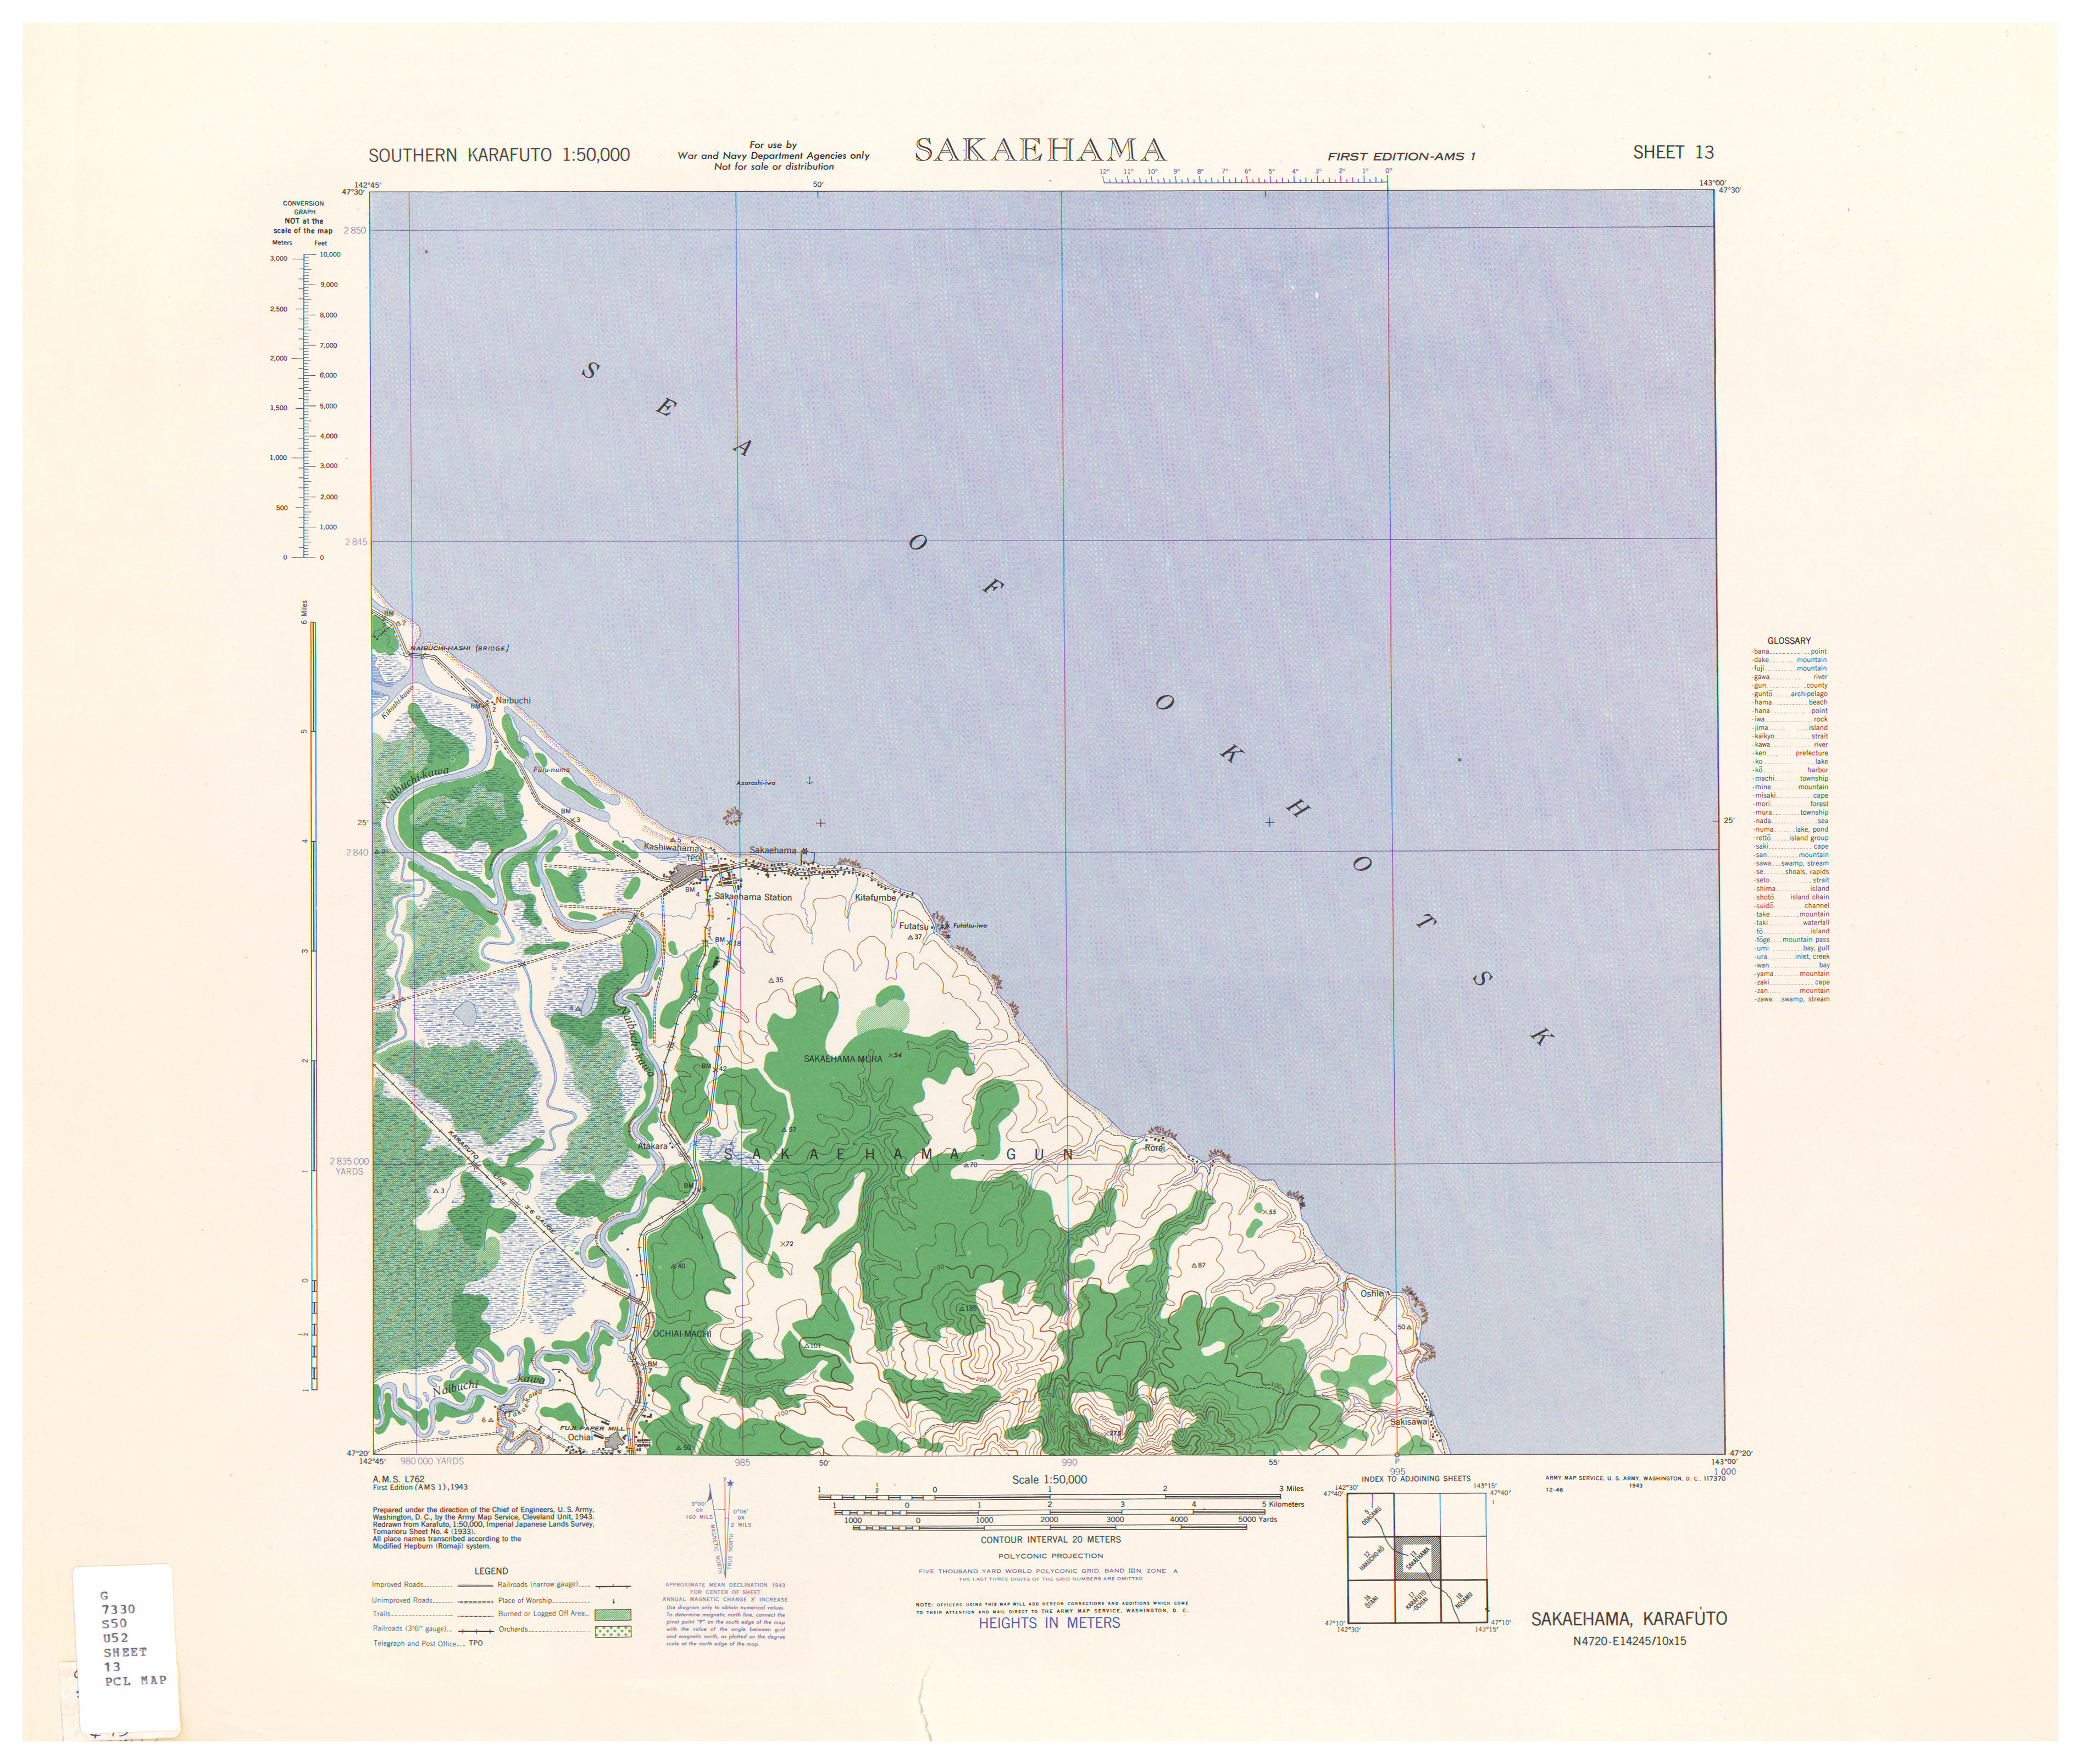 Southern Karafuto AMS Topographic Maps - Perry-Castañeda Map ...